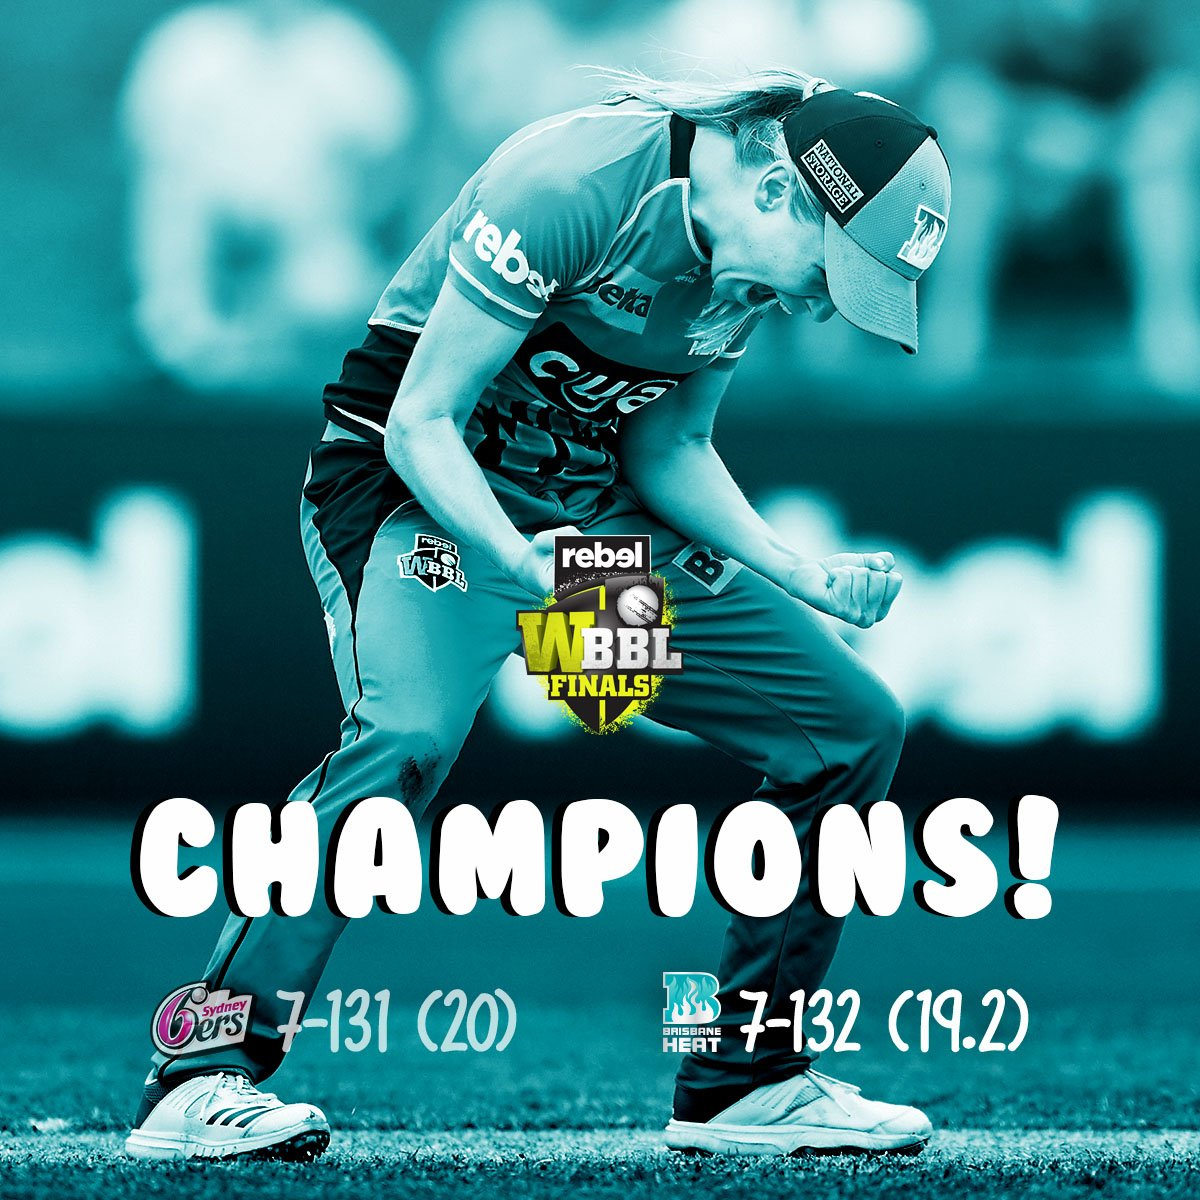 THE BRISBANE HEAT ARE THE #WBBL04 CHAMPIONS! #WBBLFinal